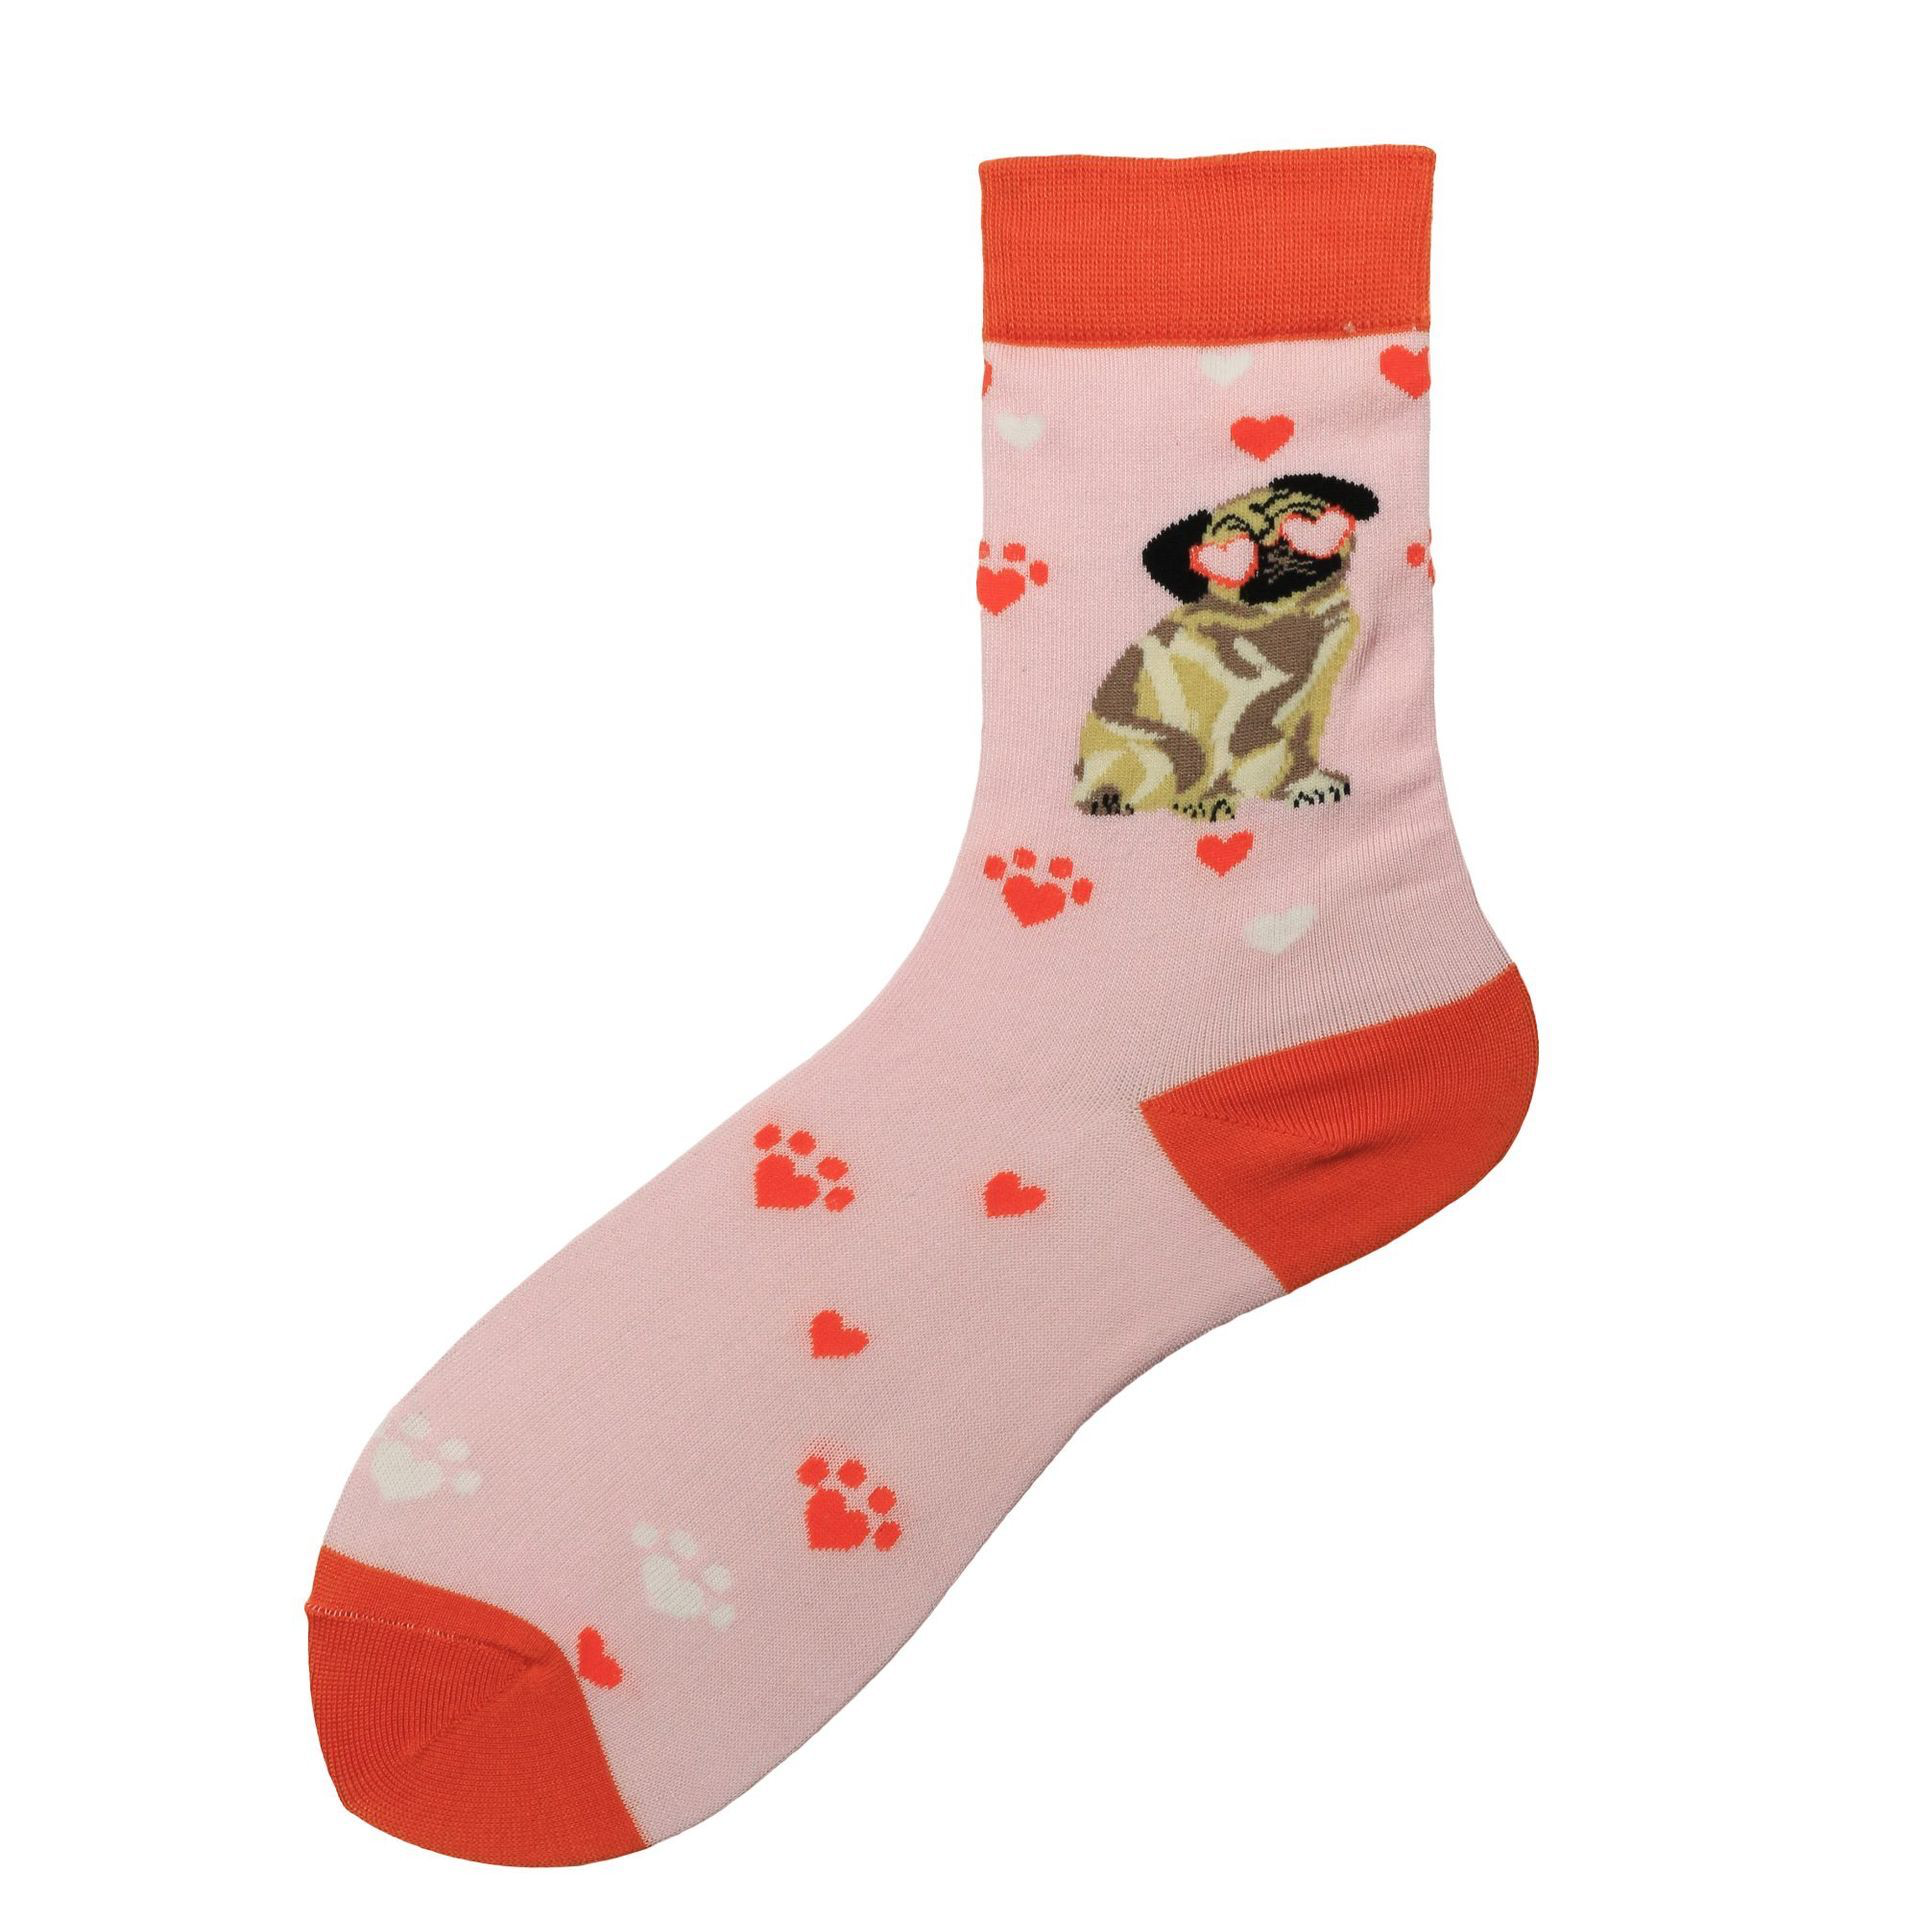 Love Pug Pattern Socks - Ice Cream Cake